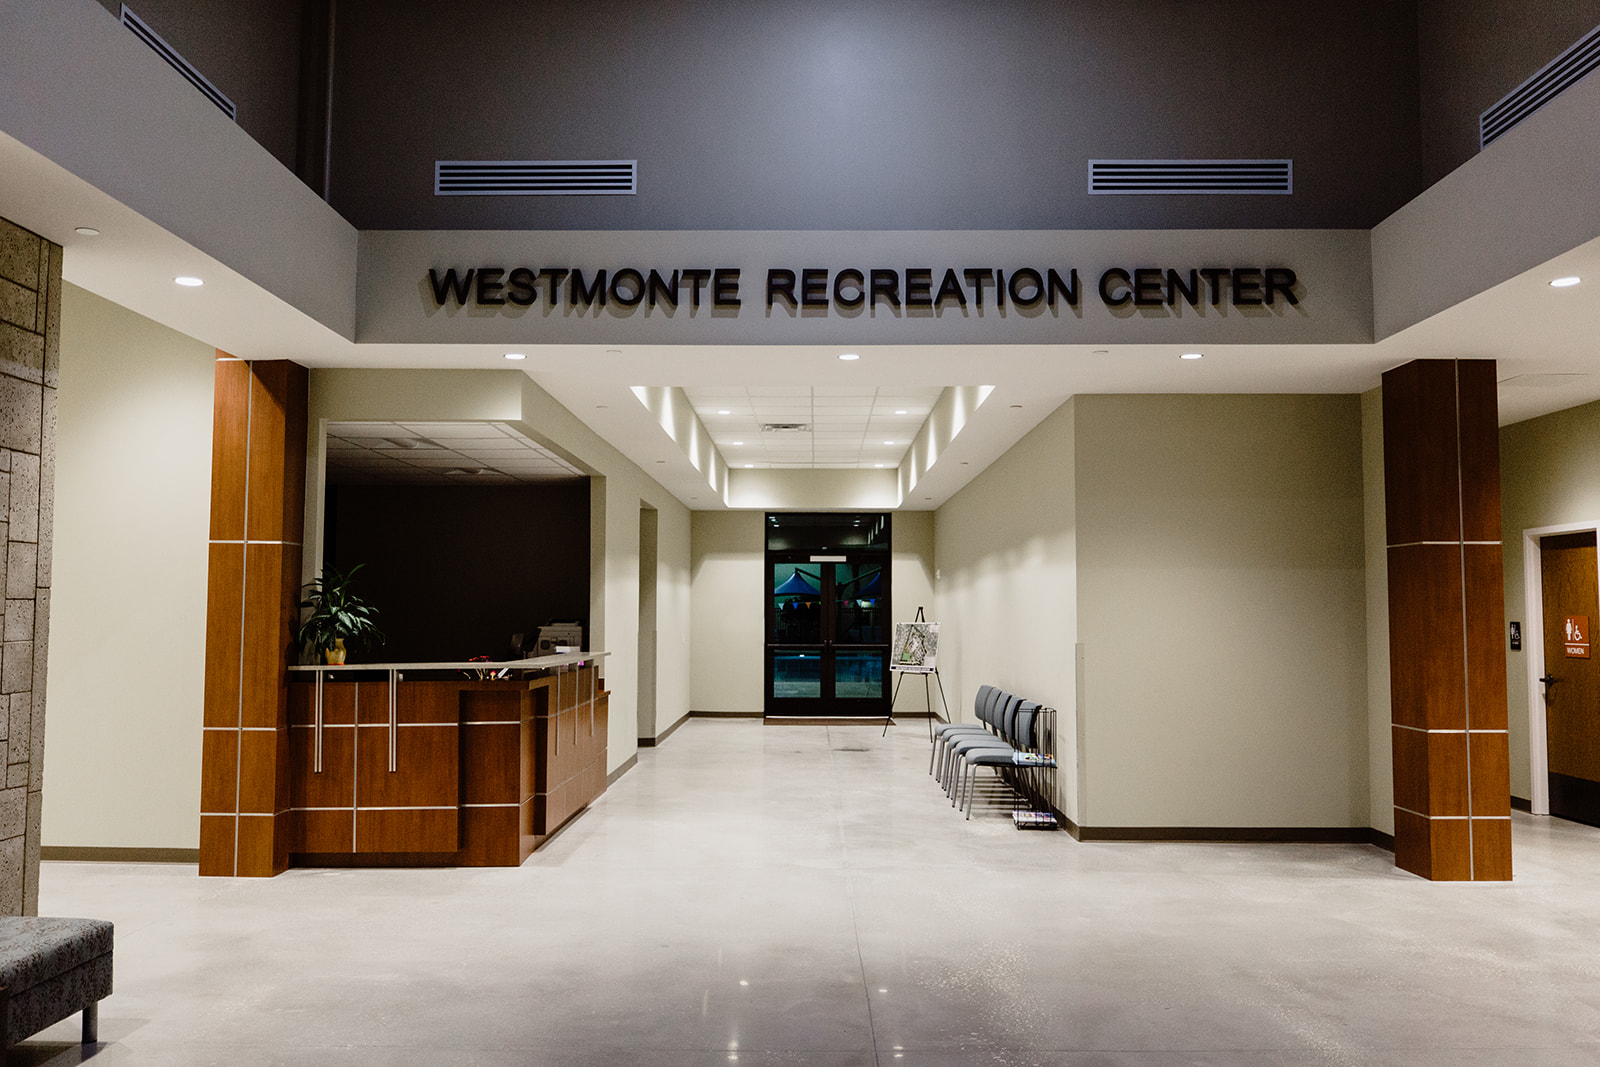 Westmonte Recreation Center